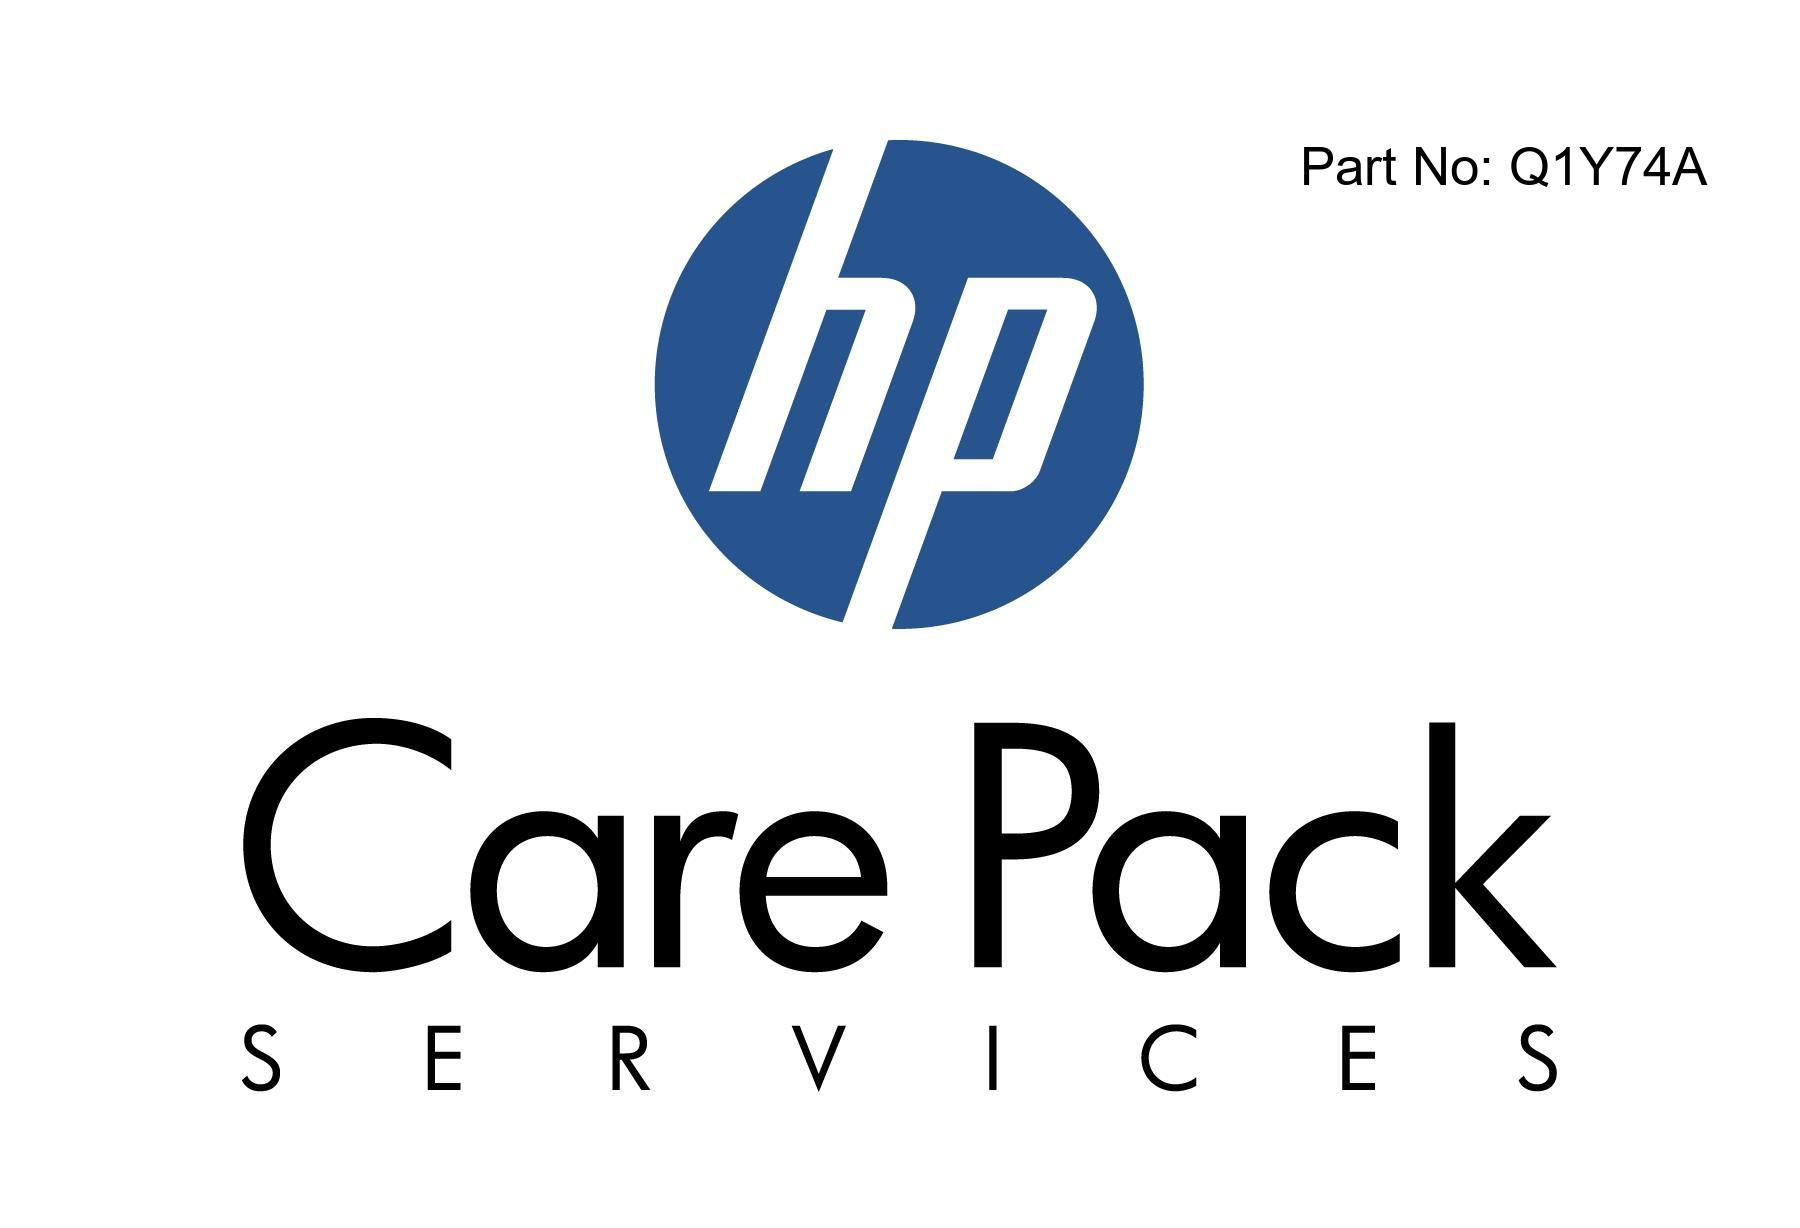 Installation Service - Installation - for HPE Complete CTERA - 1 gateway - HPE Complete - for ProLiant DL380 Gen10 Network Choice for CTERA